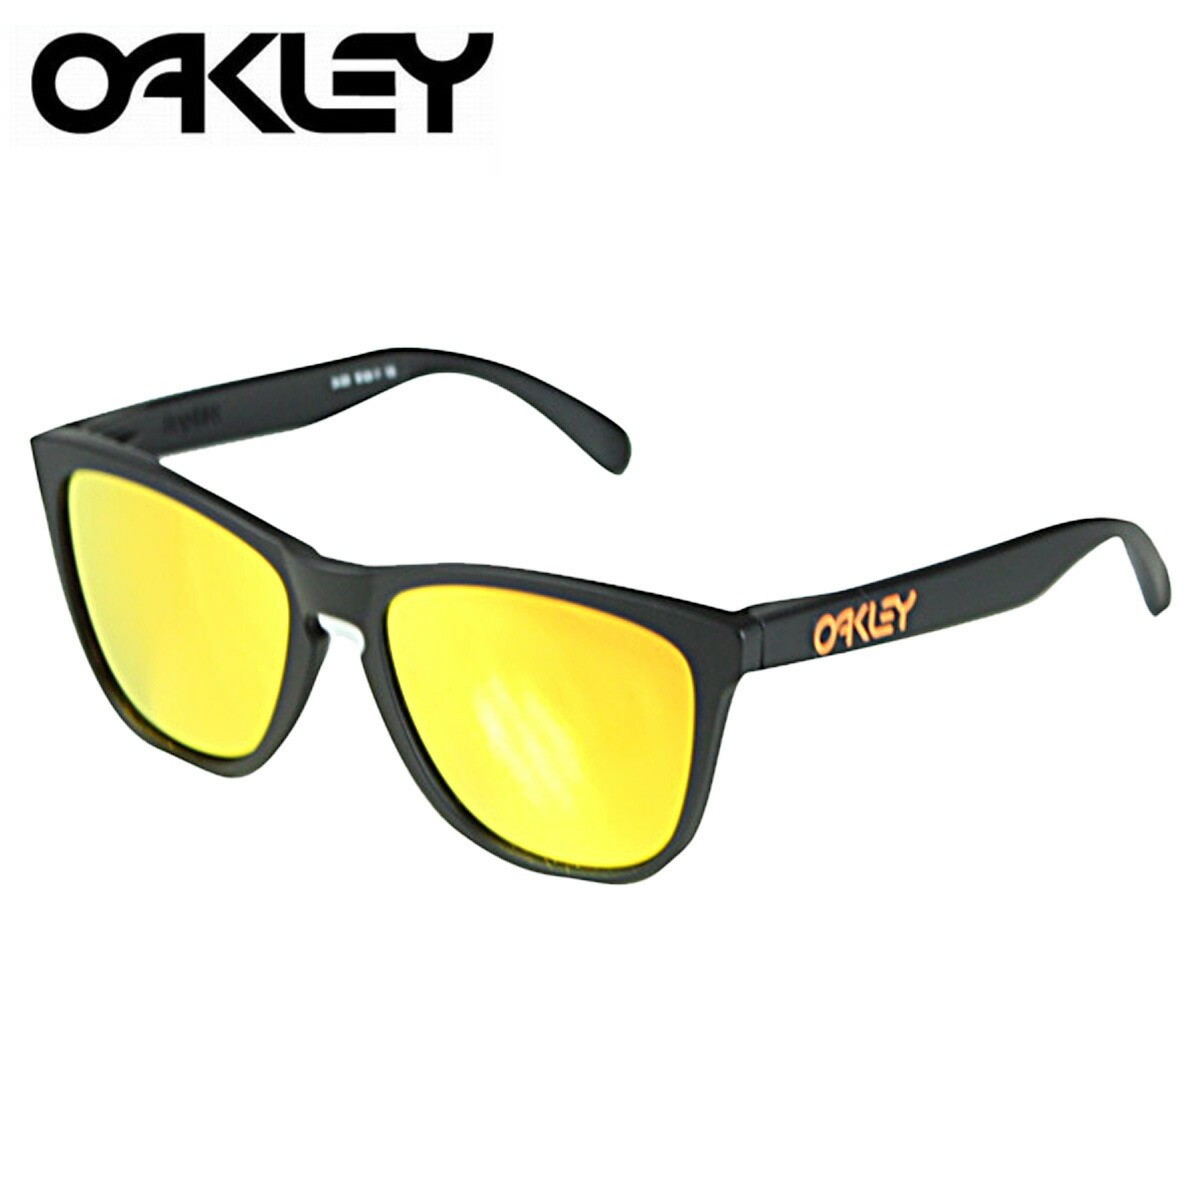 Oakley frogskins hell collection | louisiana bucket brigade.